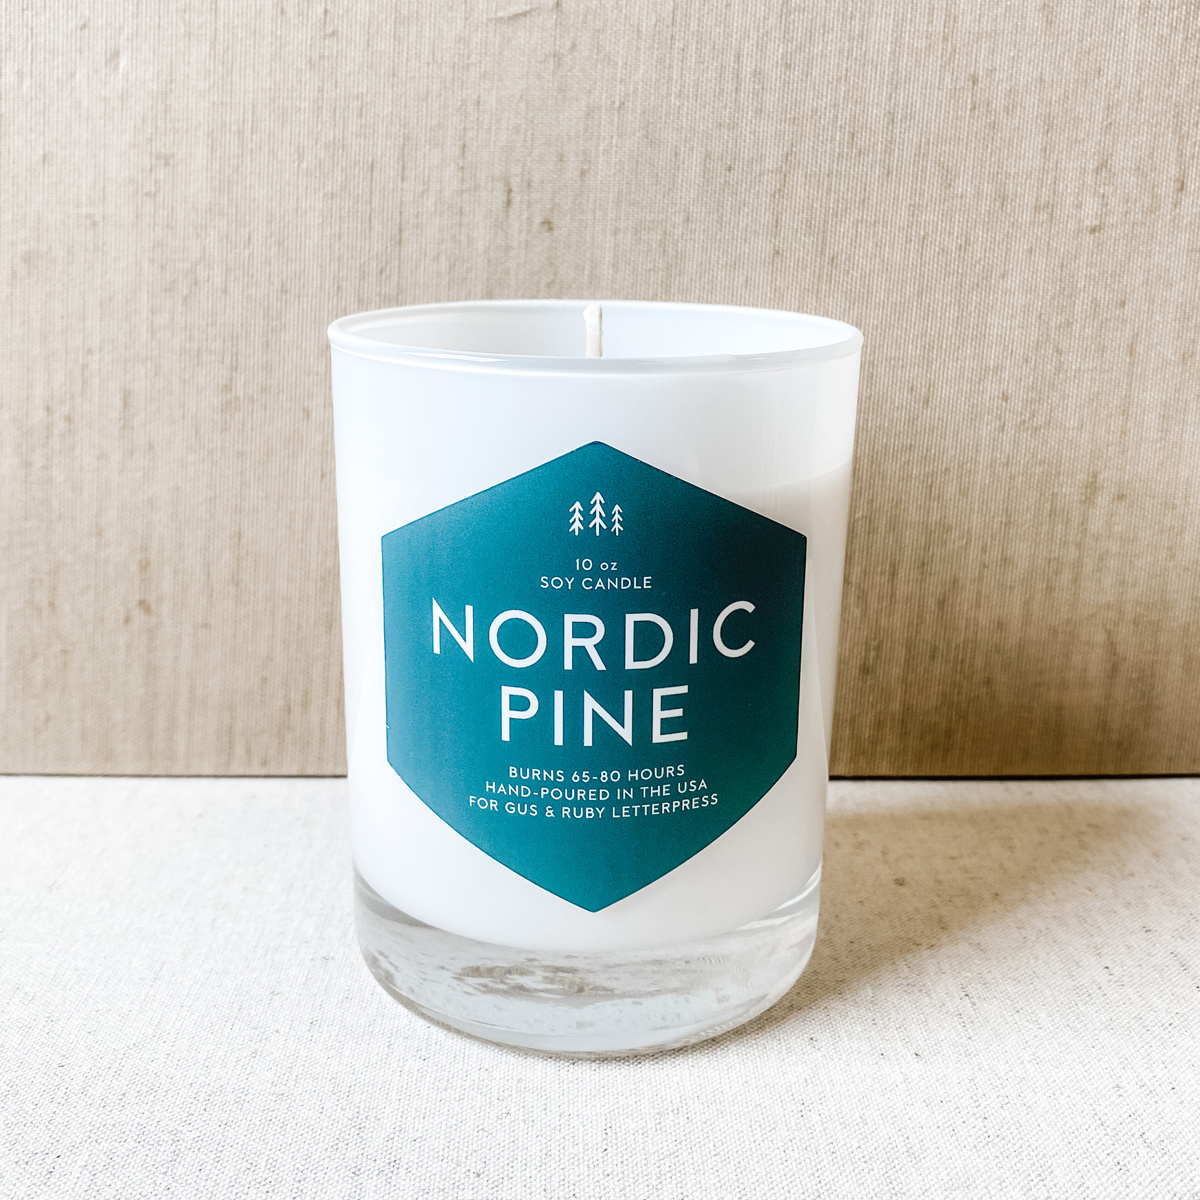 Gus and Ruby Letterpress - GR Gus & Ruby Nordic Pine Candle